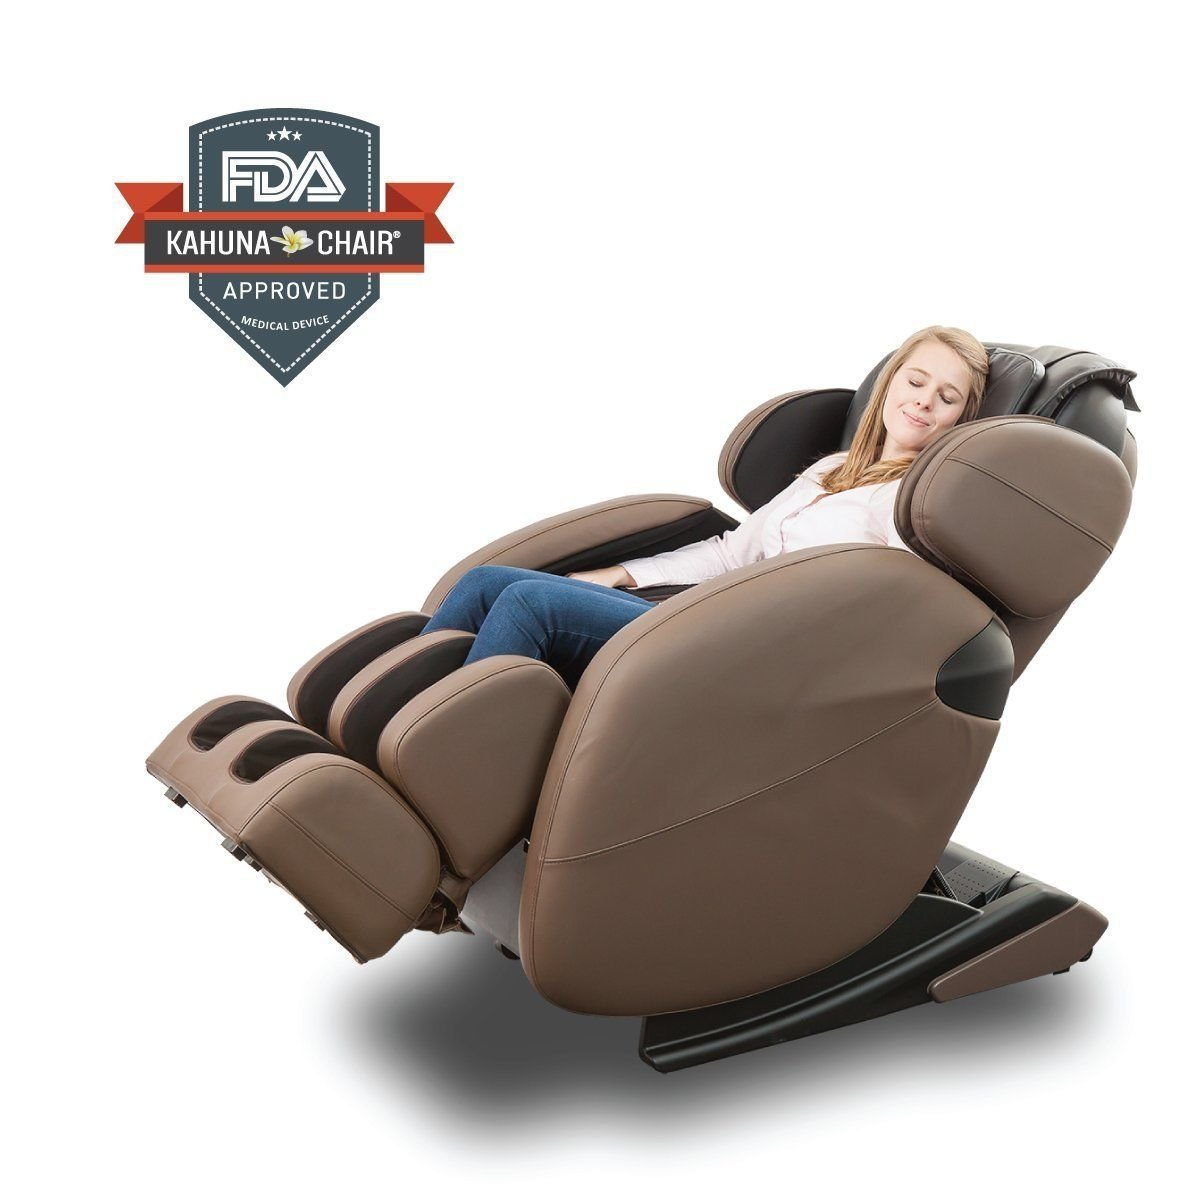 Top 10 Best Cheap Massage Chairs in 2019  Top Best Pro Review